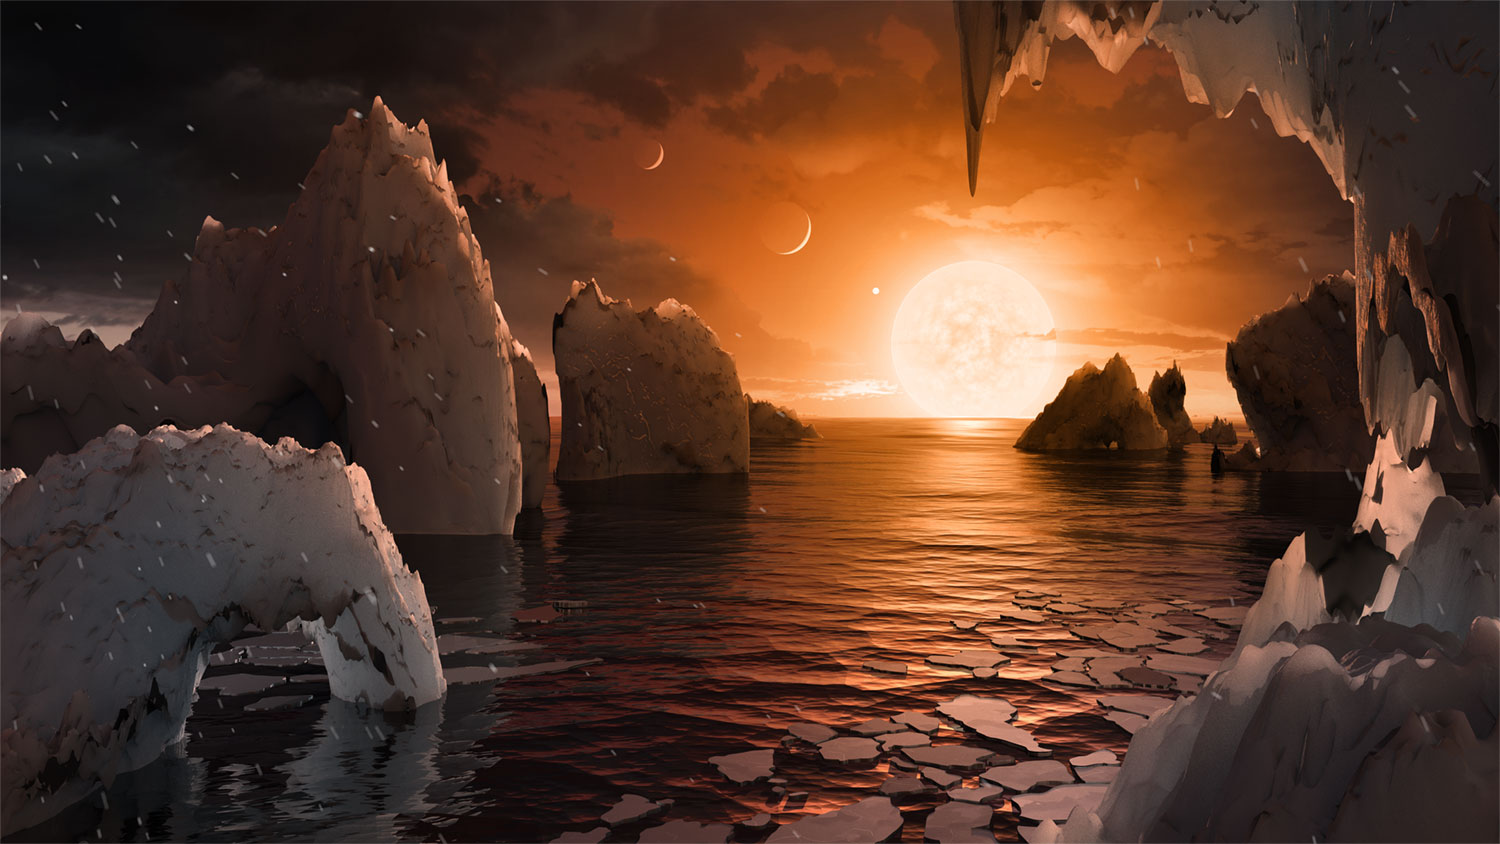 Trappist-1, a remarkable exoplanet system